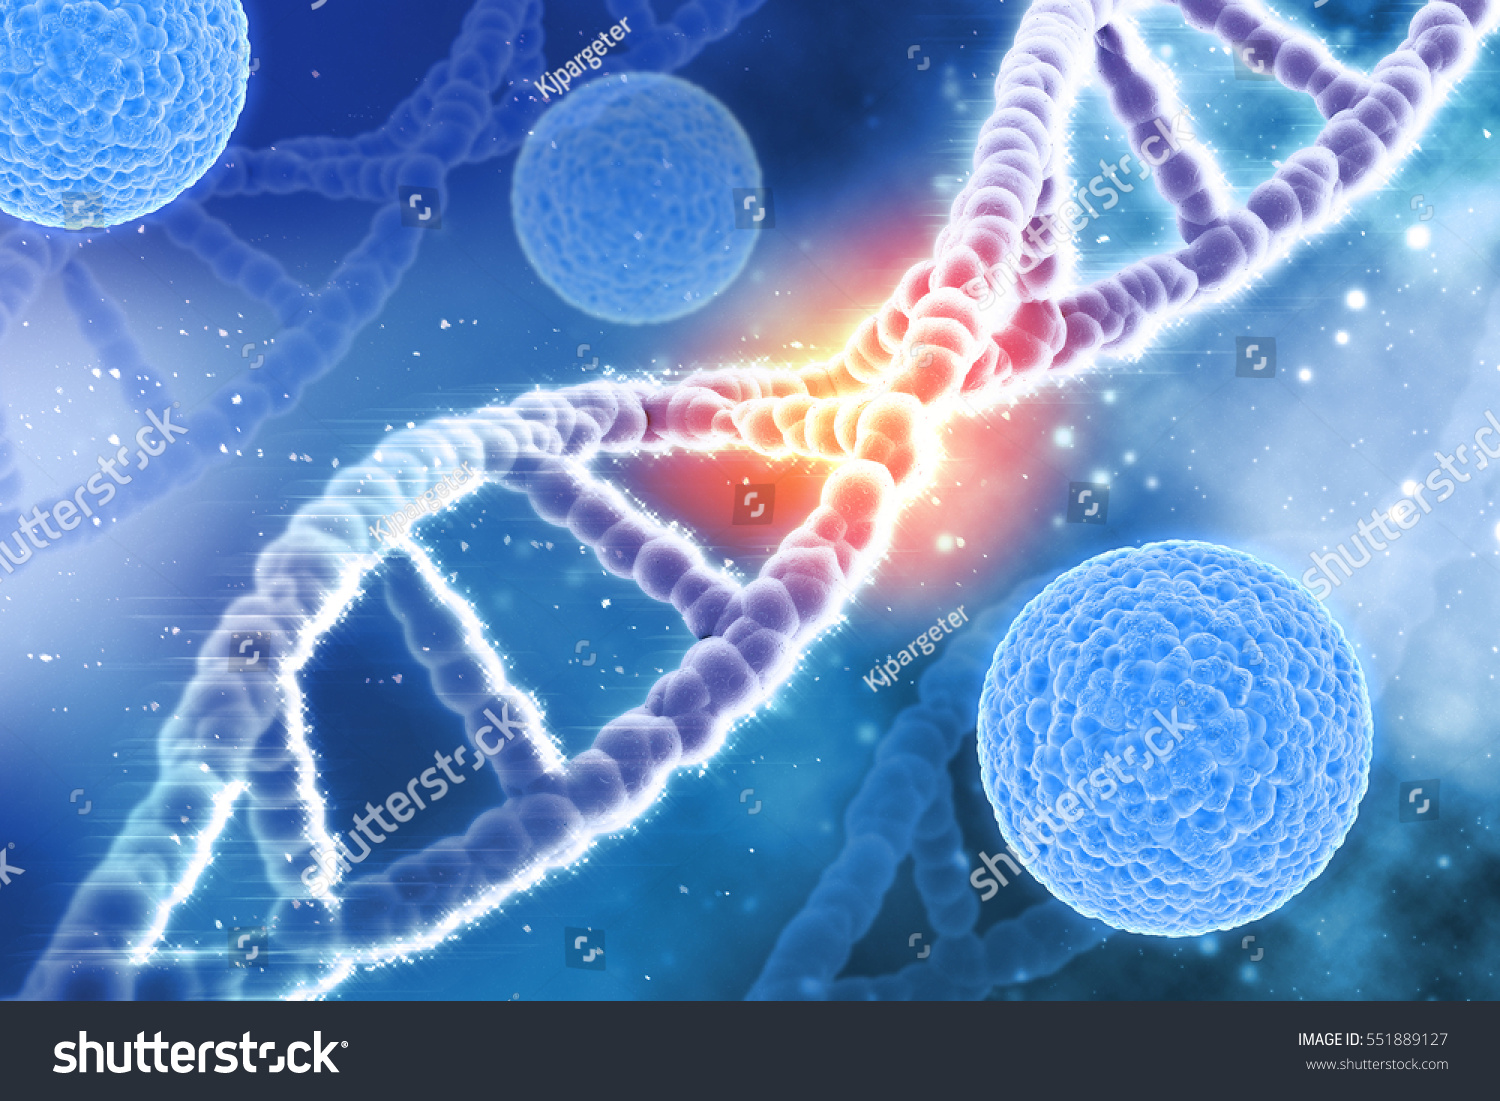 Home 3d 3d dna virus hd wallpaper - 3d Medical Background With Virus Cells And Dna Strands